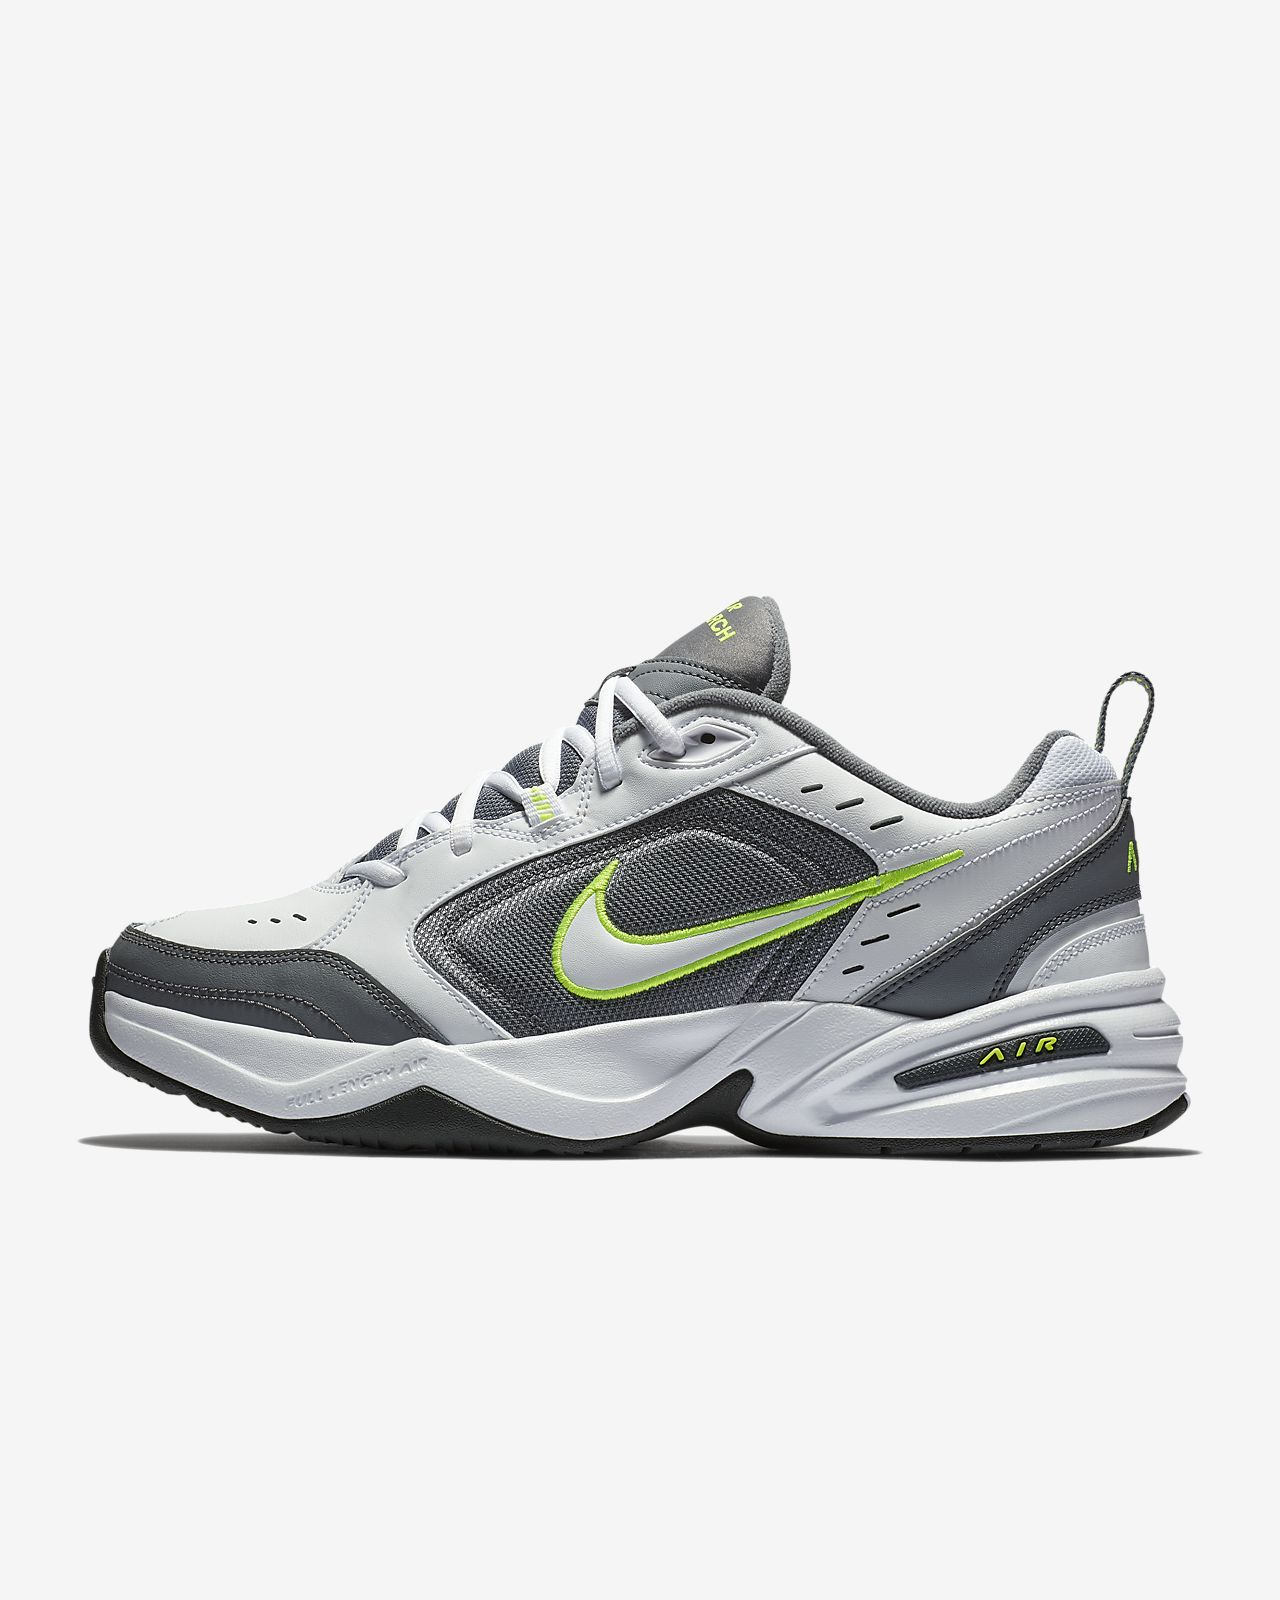 73184100fc64 Nike Air Monarch IV Lifestyle Gym Shoe. Nike.com